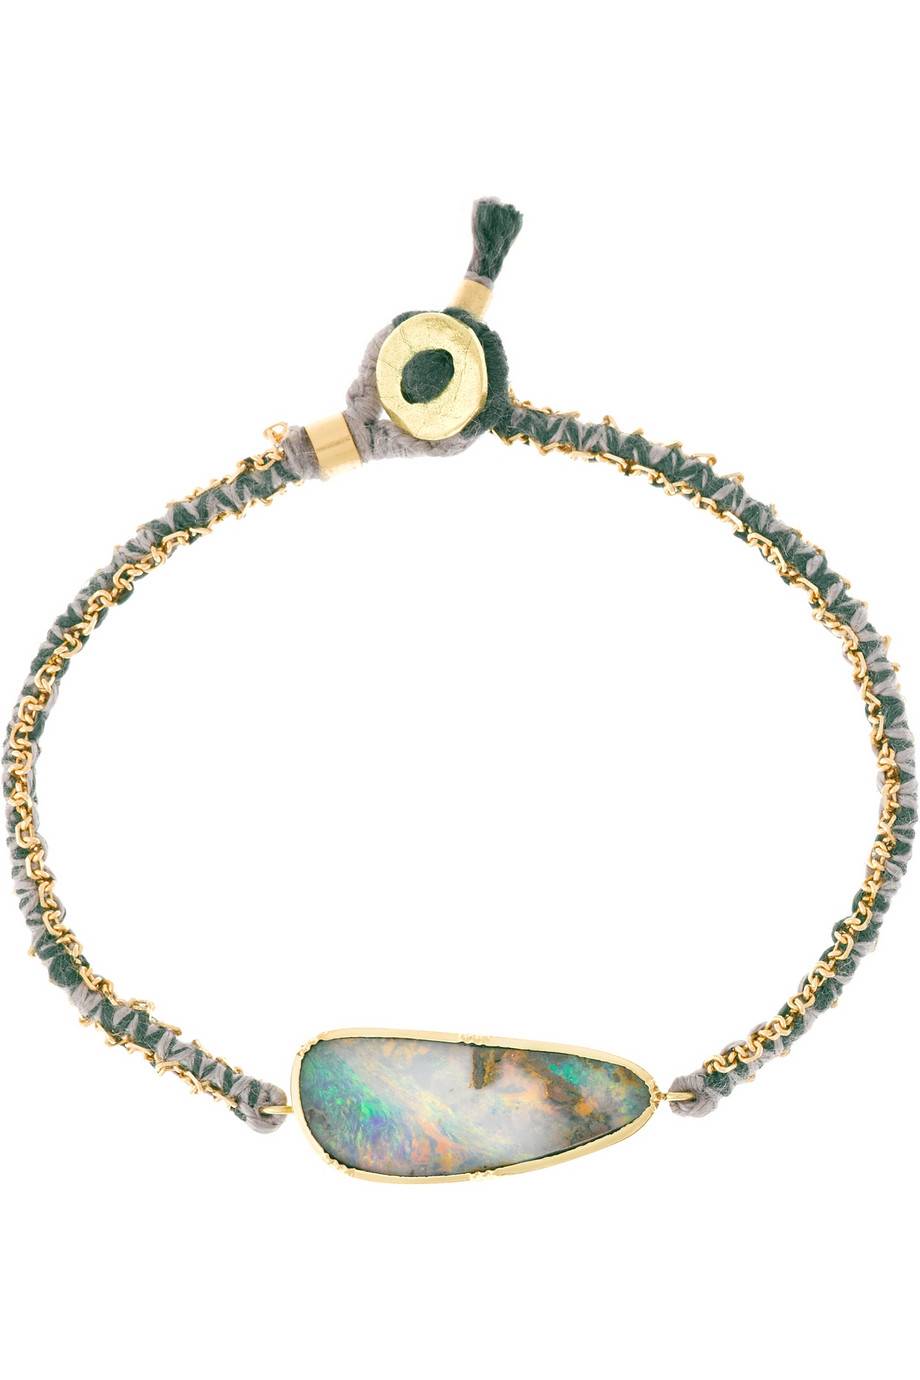 Brooke Gregson  18-karat gold boulder opal bracelet, $2,750,  available at Net-A-Porter.